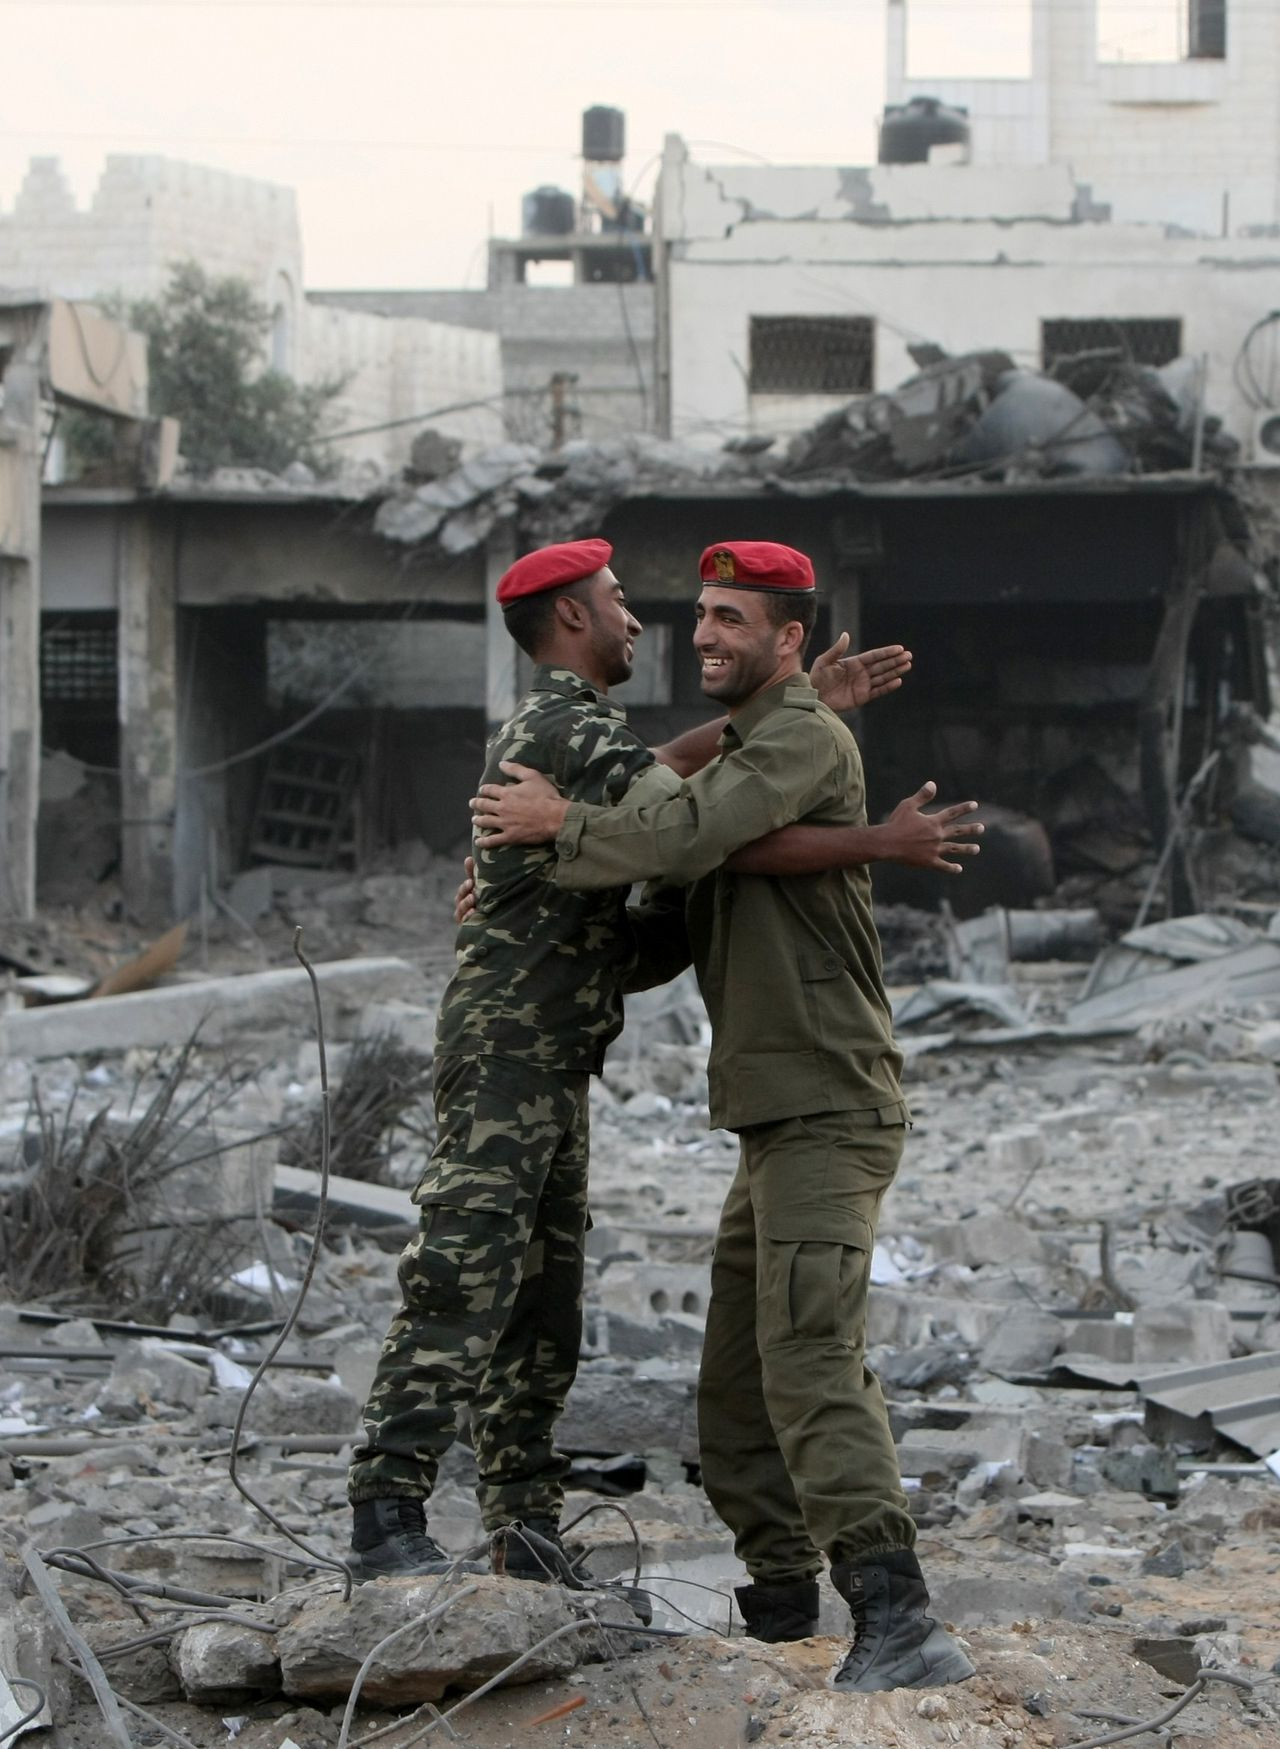 Hamas police officers embrace after their return to their destroyed Al-Saraya headquarters in Gaza City November 22, 2012, a day after a cease fire was declared between Israel and Hamas. An Egypt-brokered truce took hold in the Gaza Strip after a week of bitter fighting between militant groups and Israel, with both sides claiming victory but remaining wary. AFP PHOTO/MAHMUD HAMS